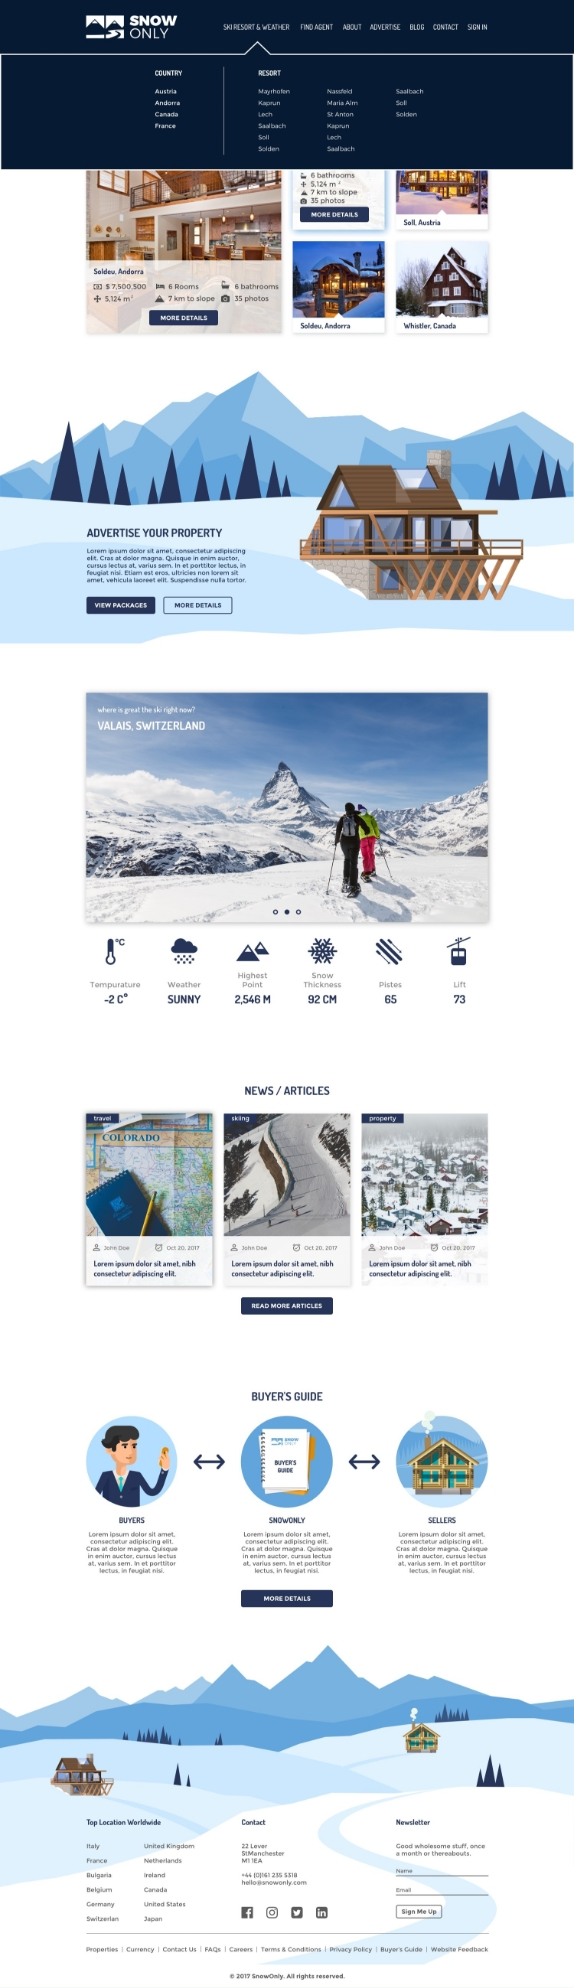 Snow Only Page